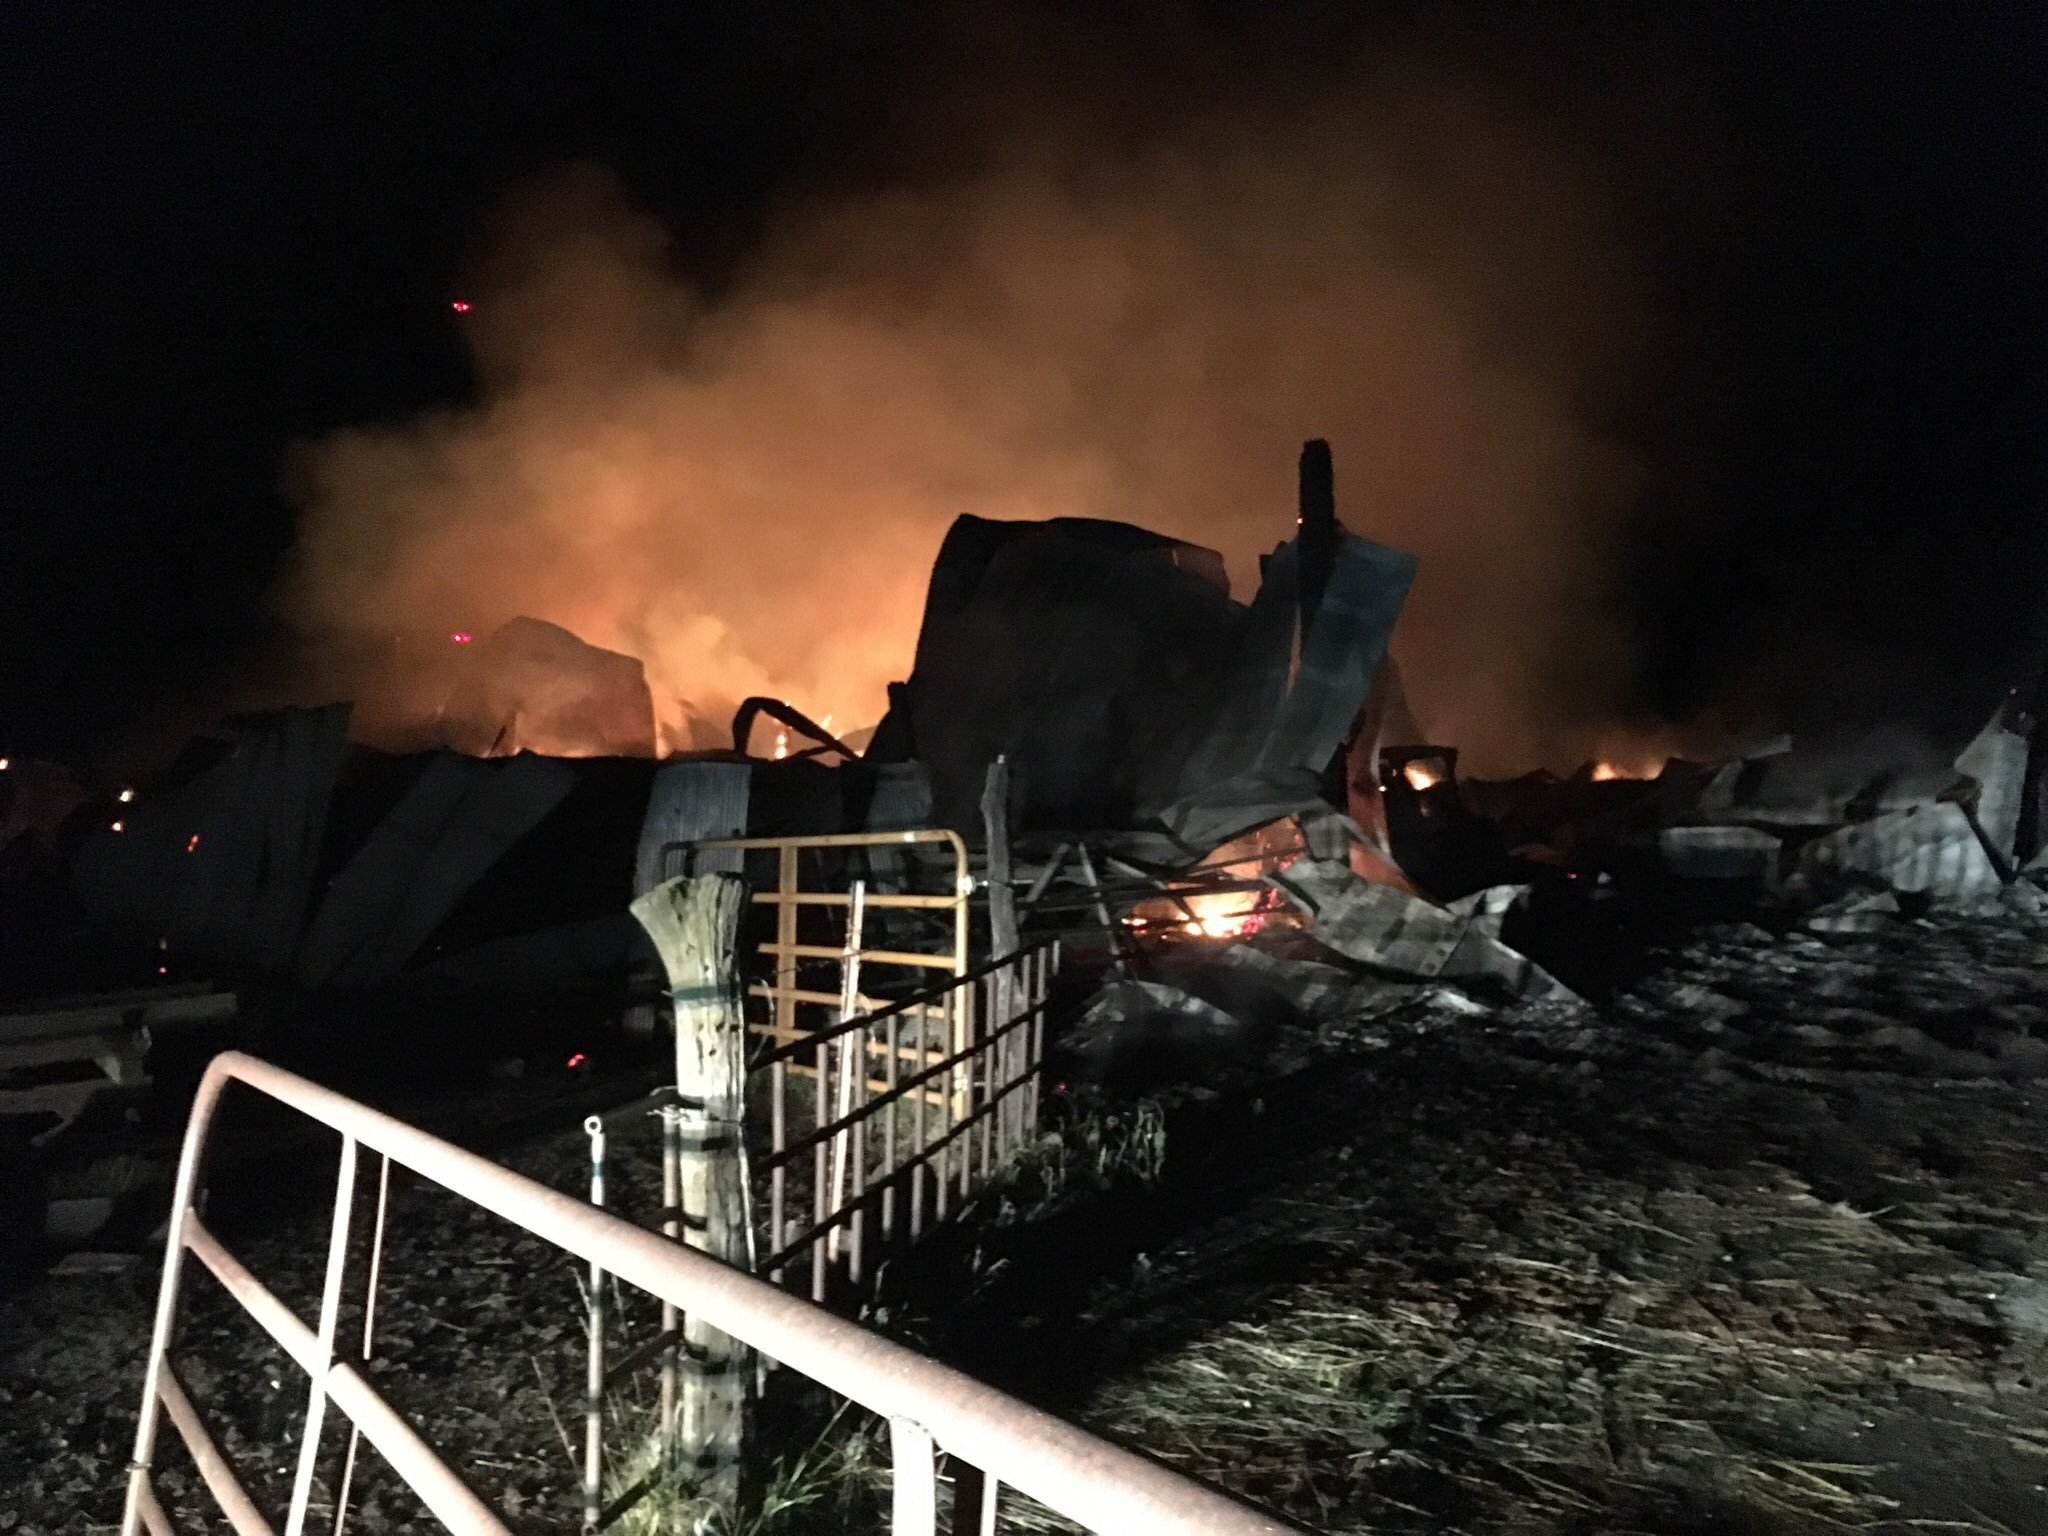 There is a $2,000 reward for information that leads to a conviction after multiple fires on a family's property. (Submitted)